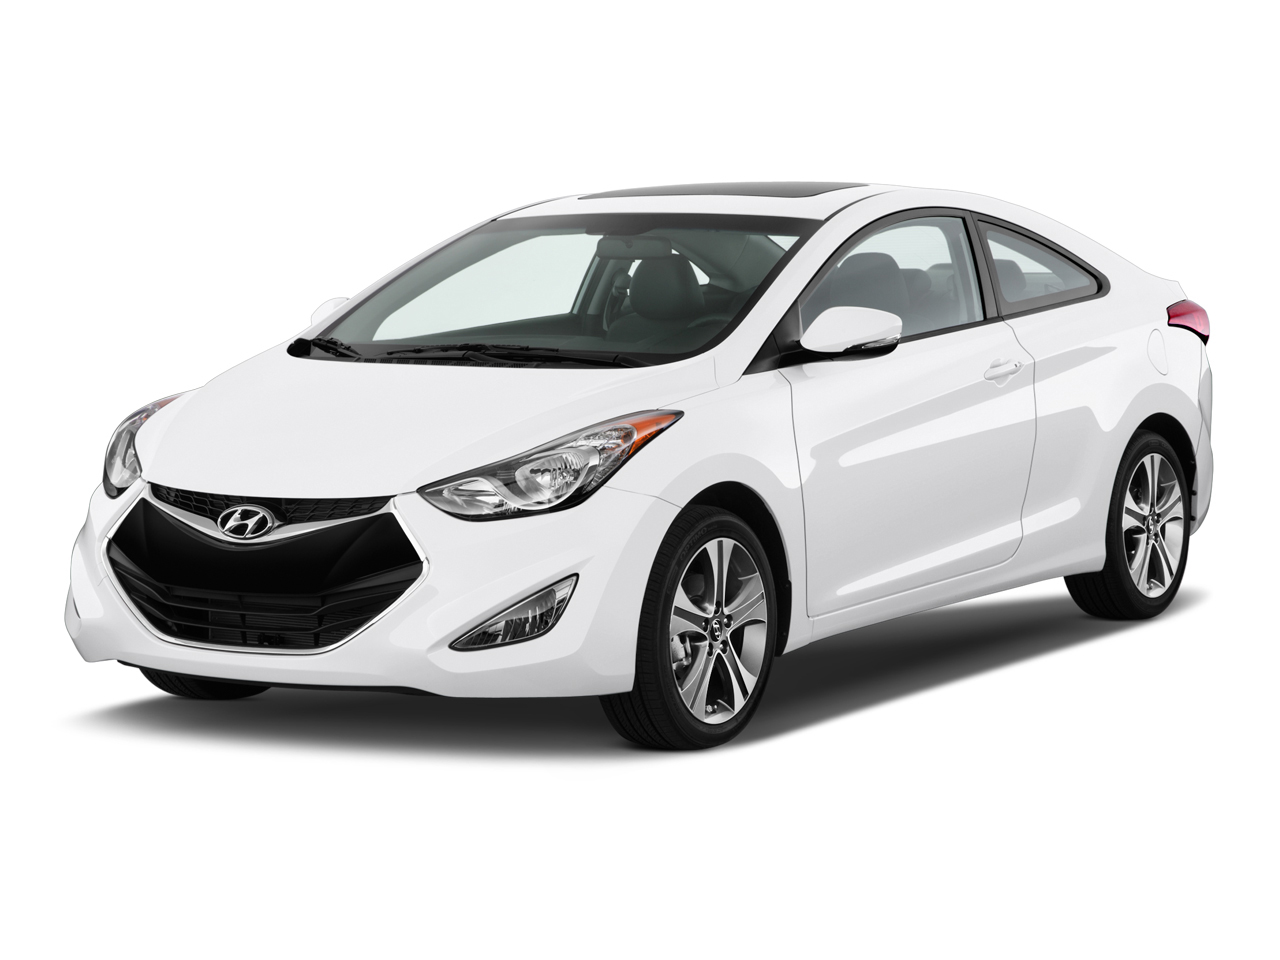 Hyundai Elantra Specs Of Wheel Sizes Tires Pcd Offset And Rims Wheel Size Com